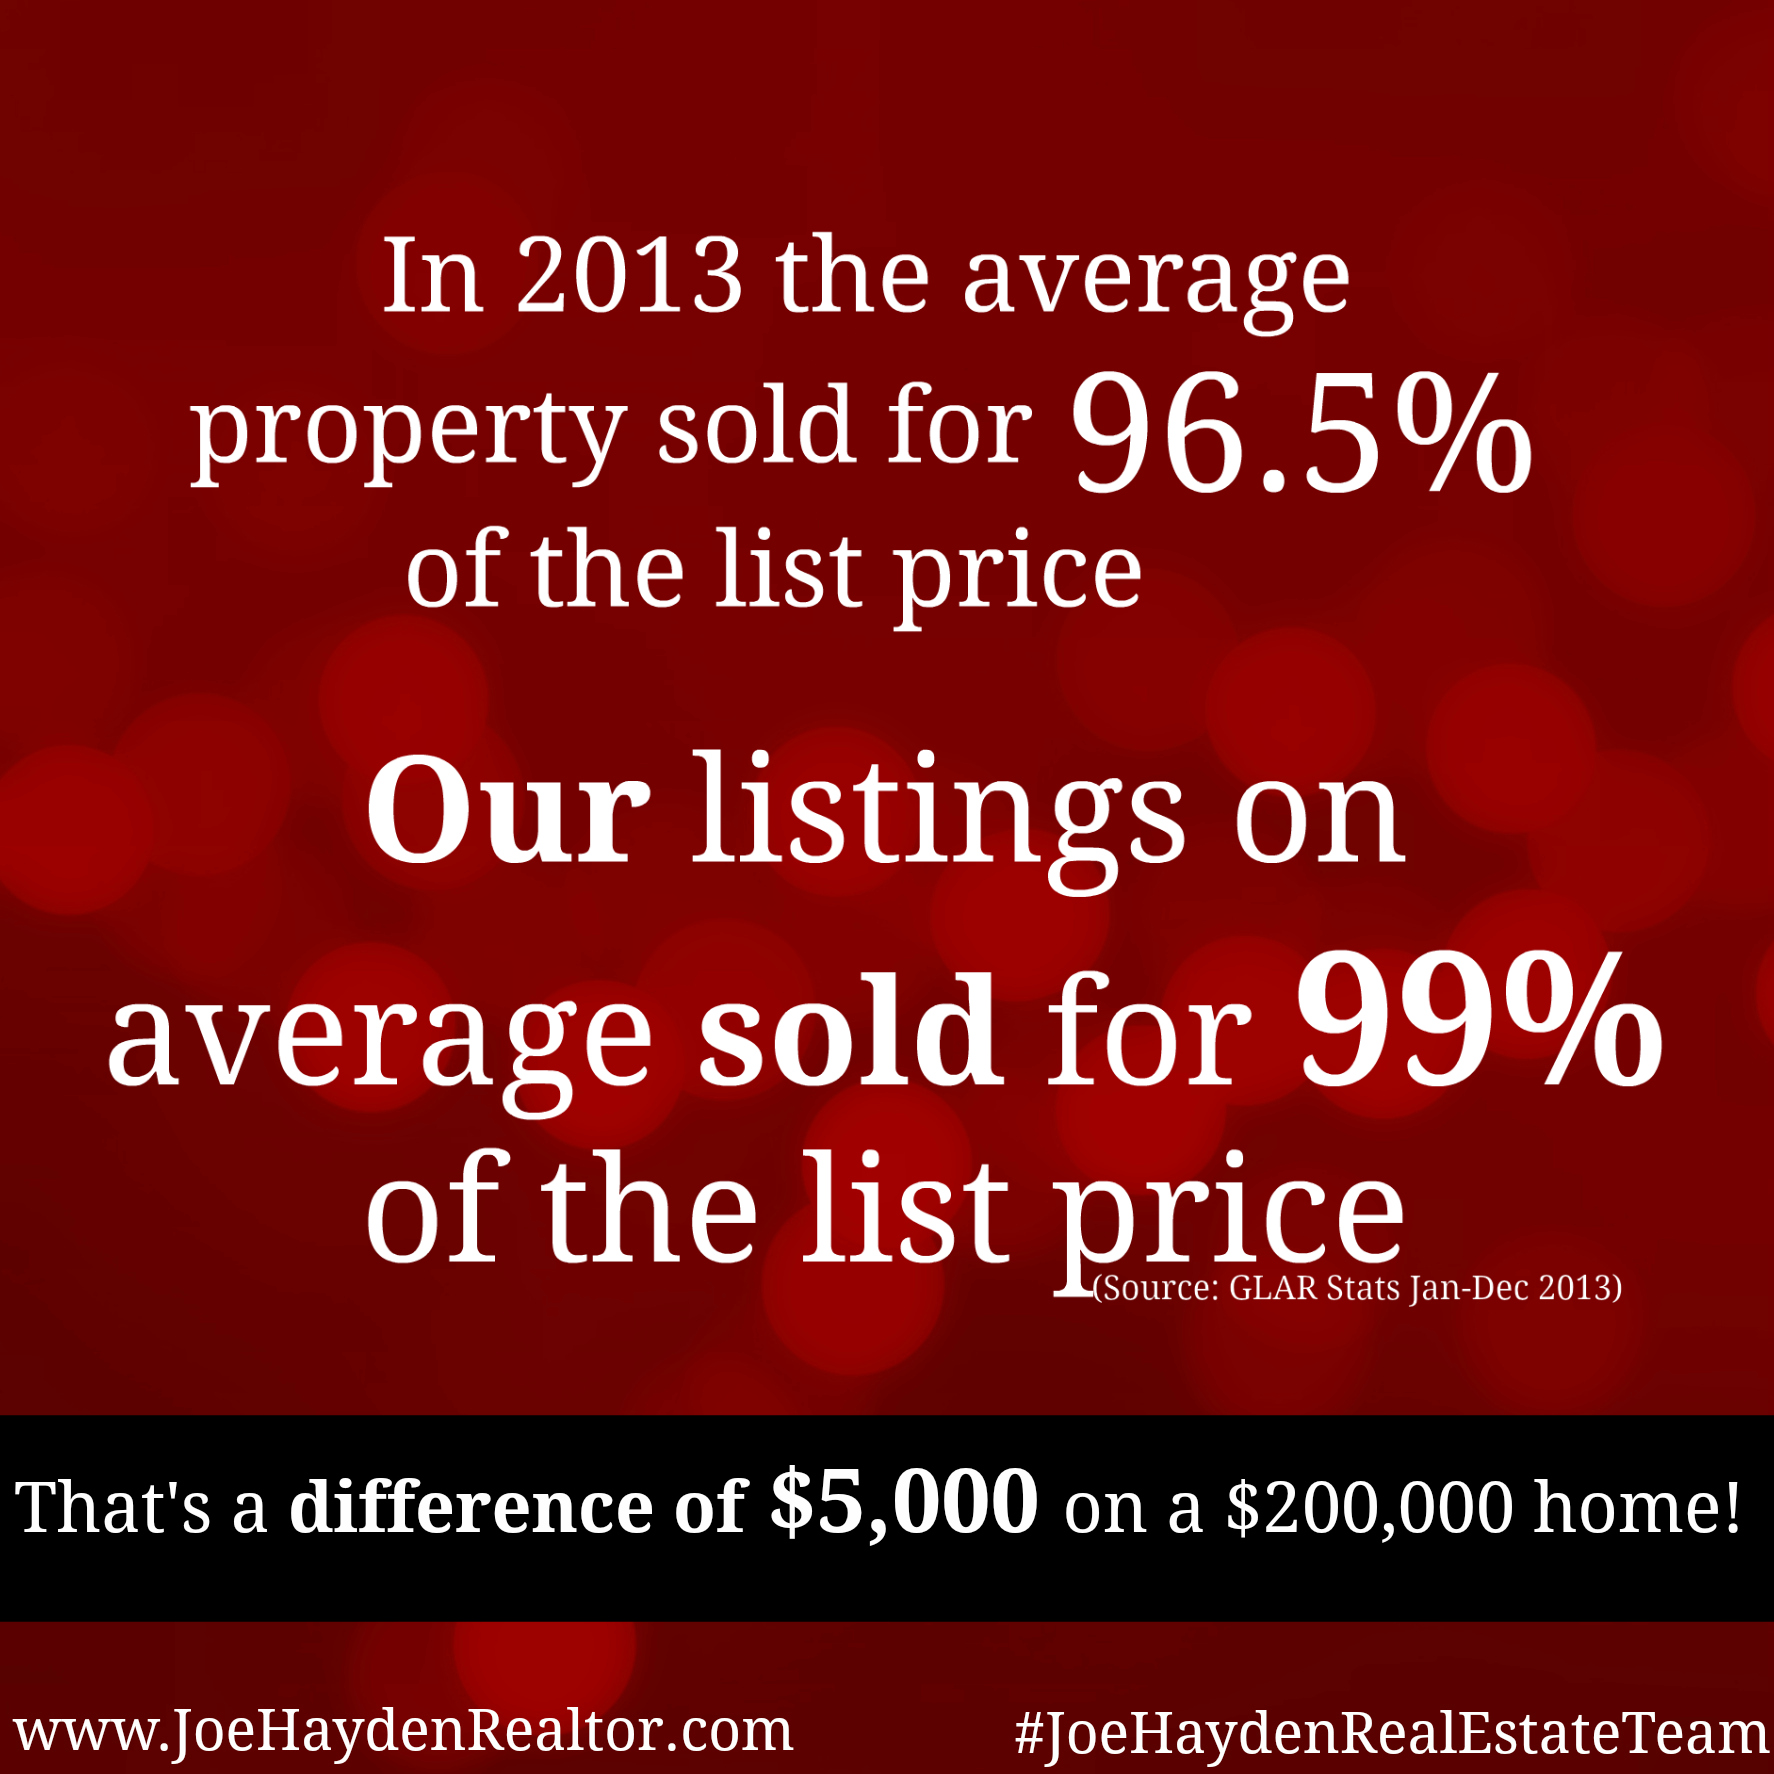 Homes Sold at 99% of List Price